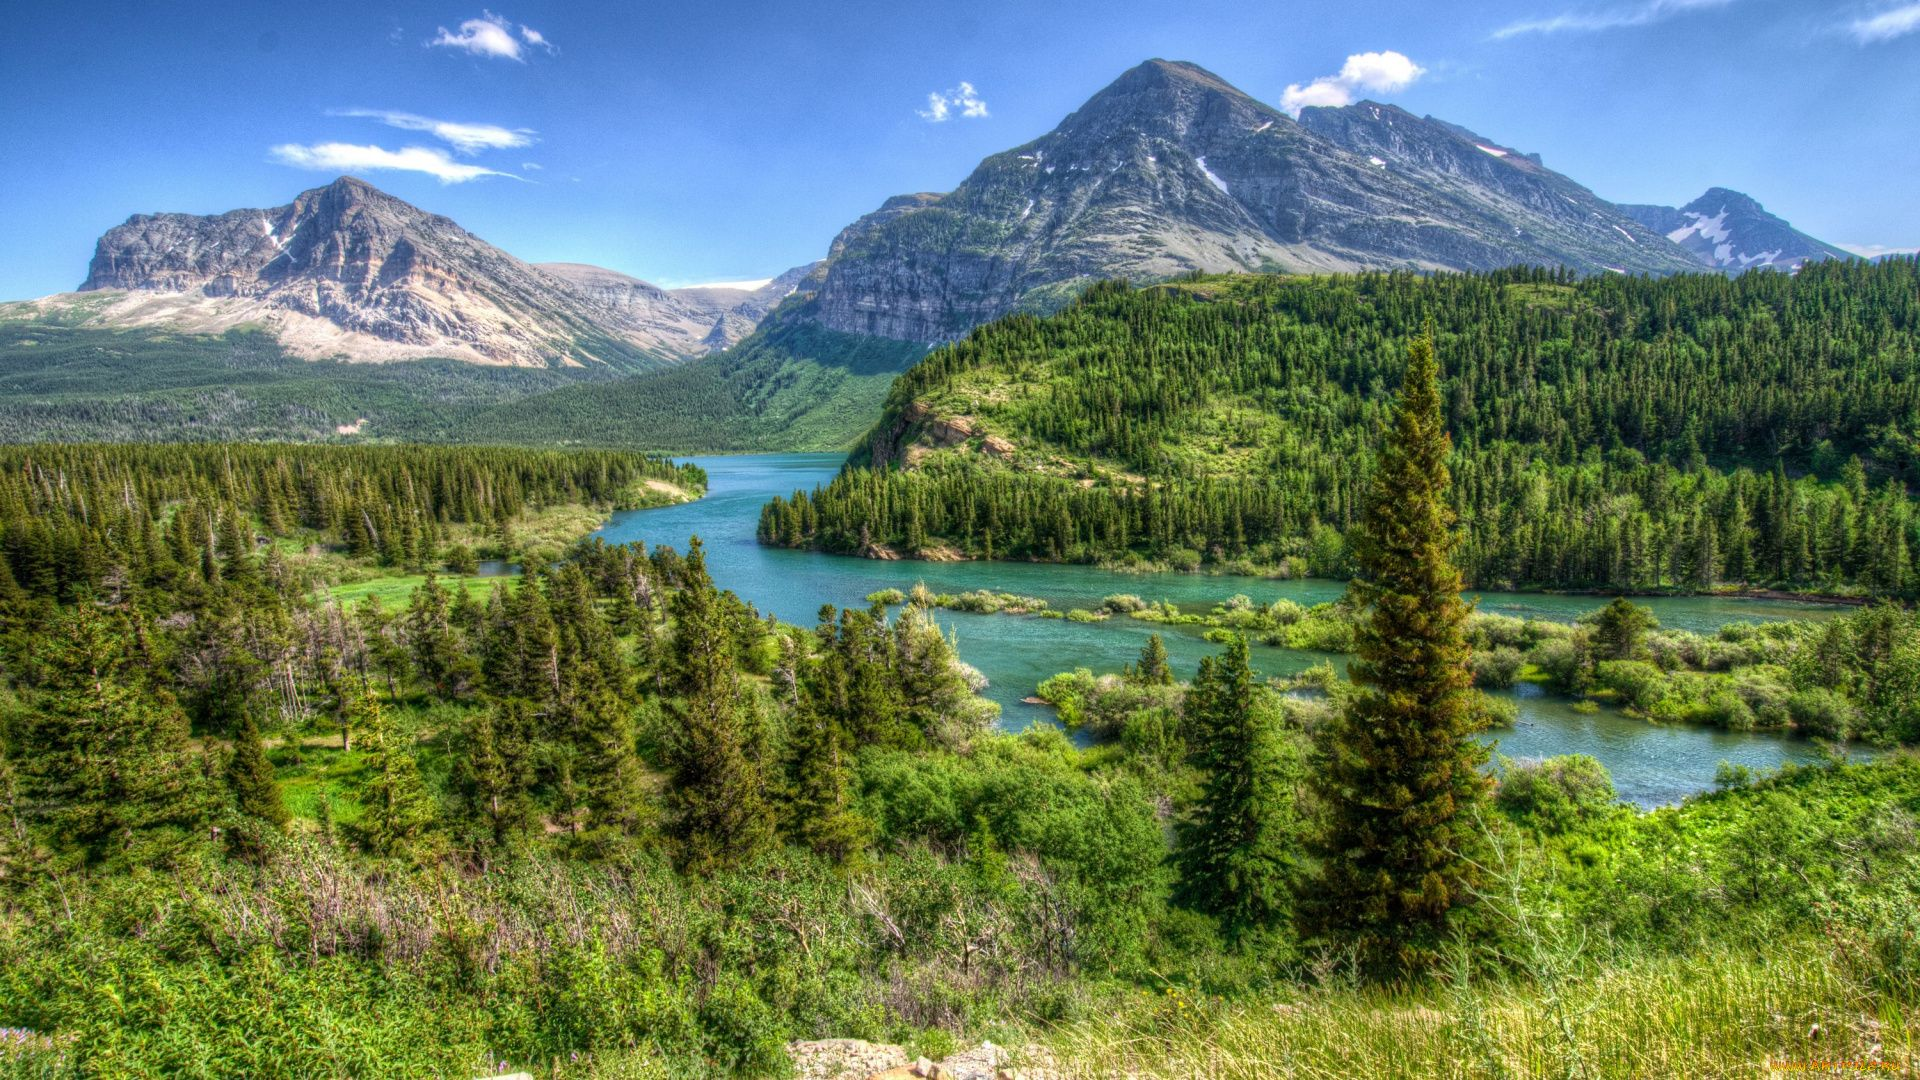 Glacier National Park full hd image